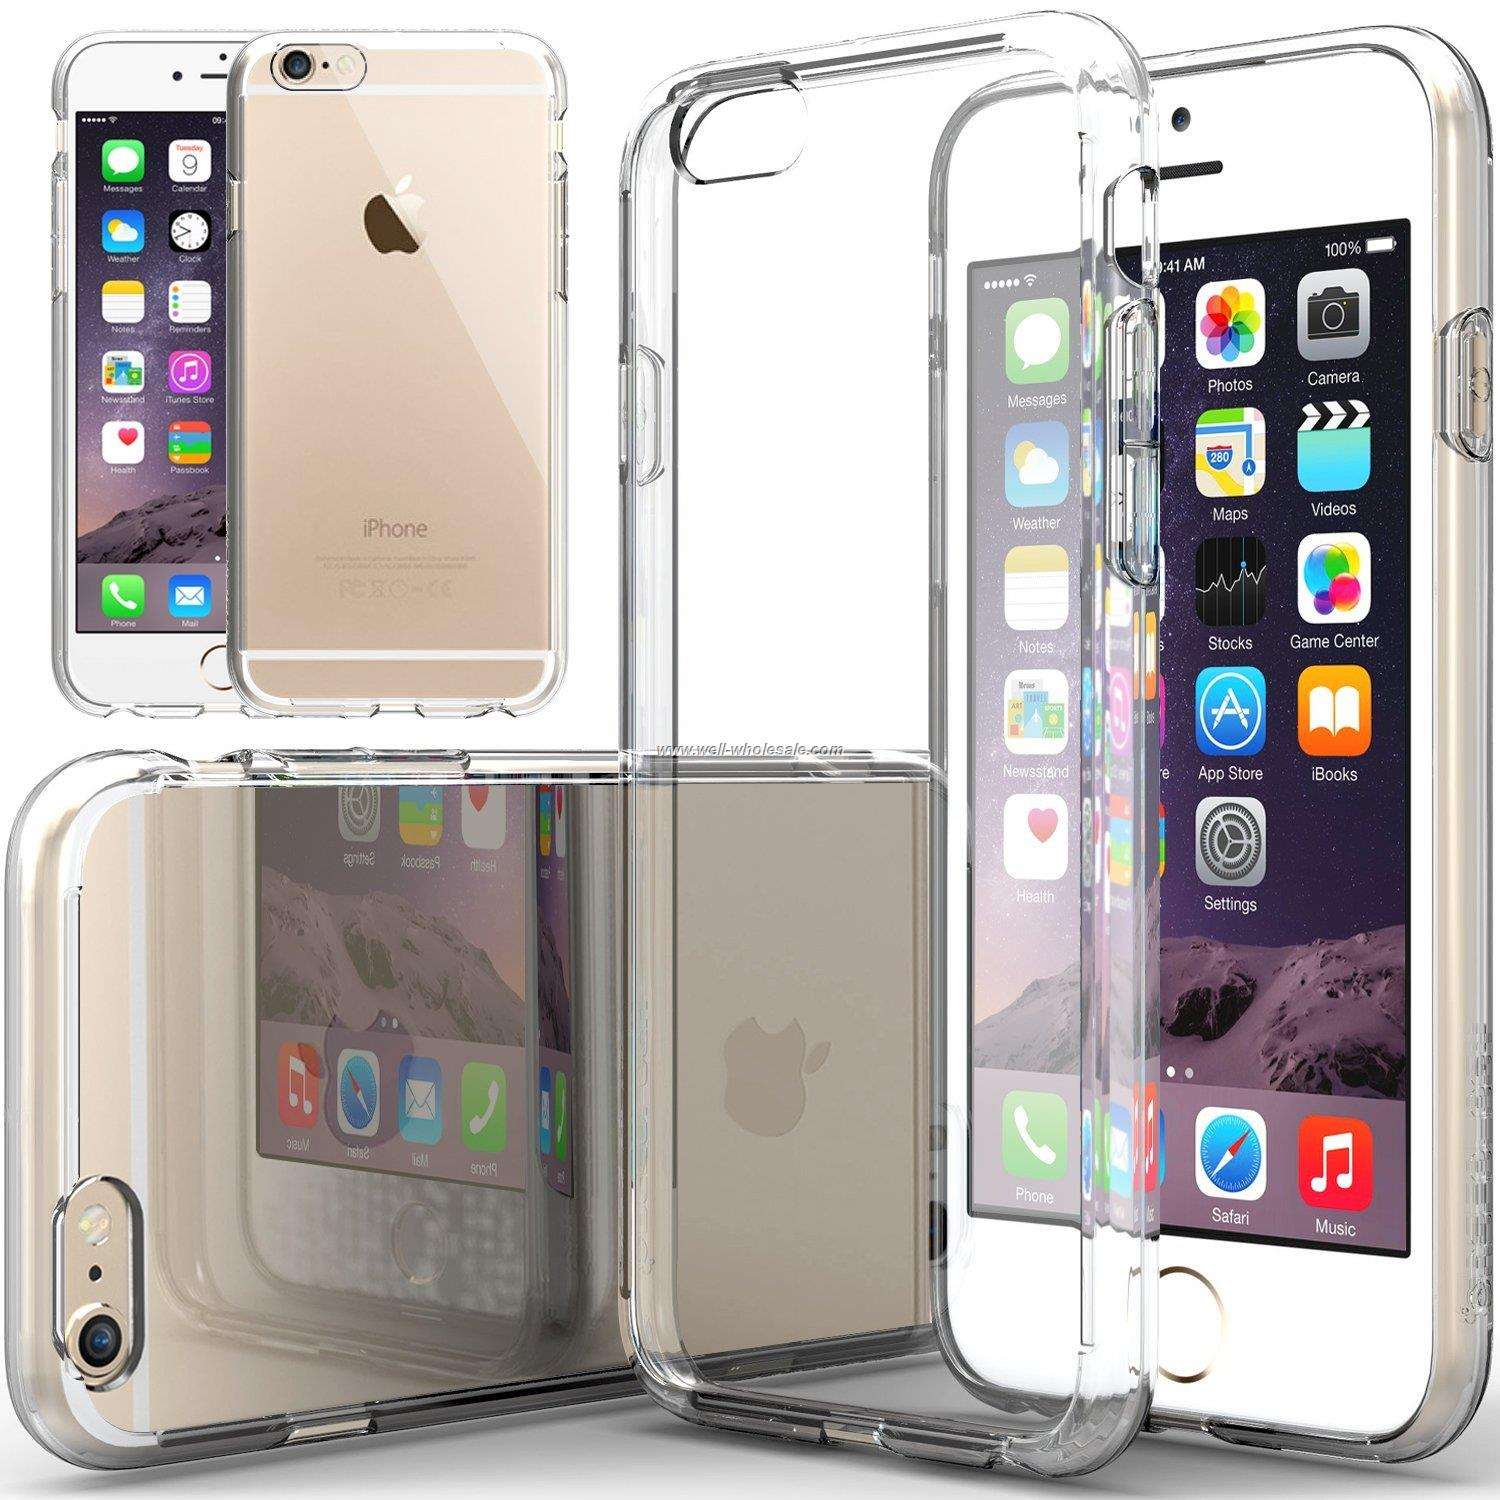 TPU case for apple iPhone 6,for iPhone 6 case,for iPhone6 case